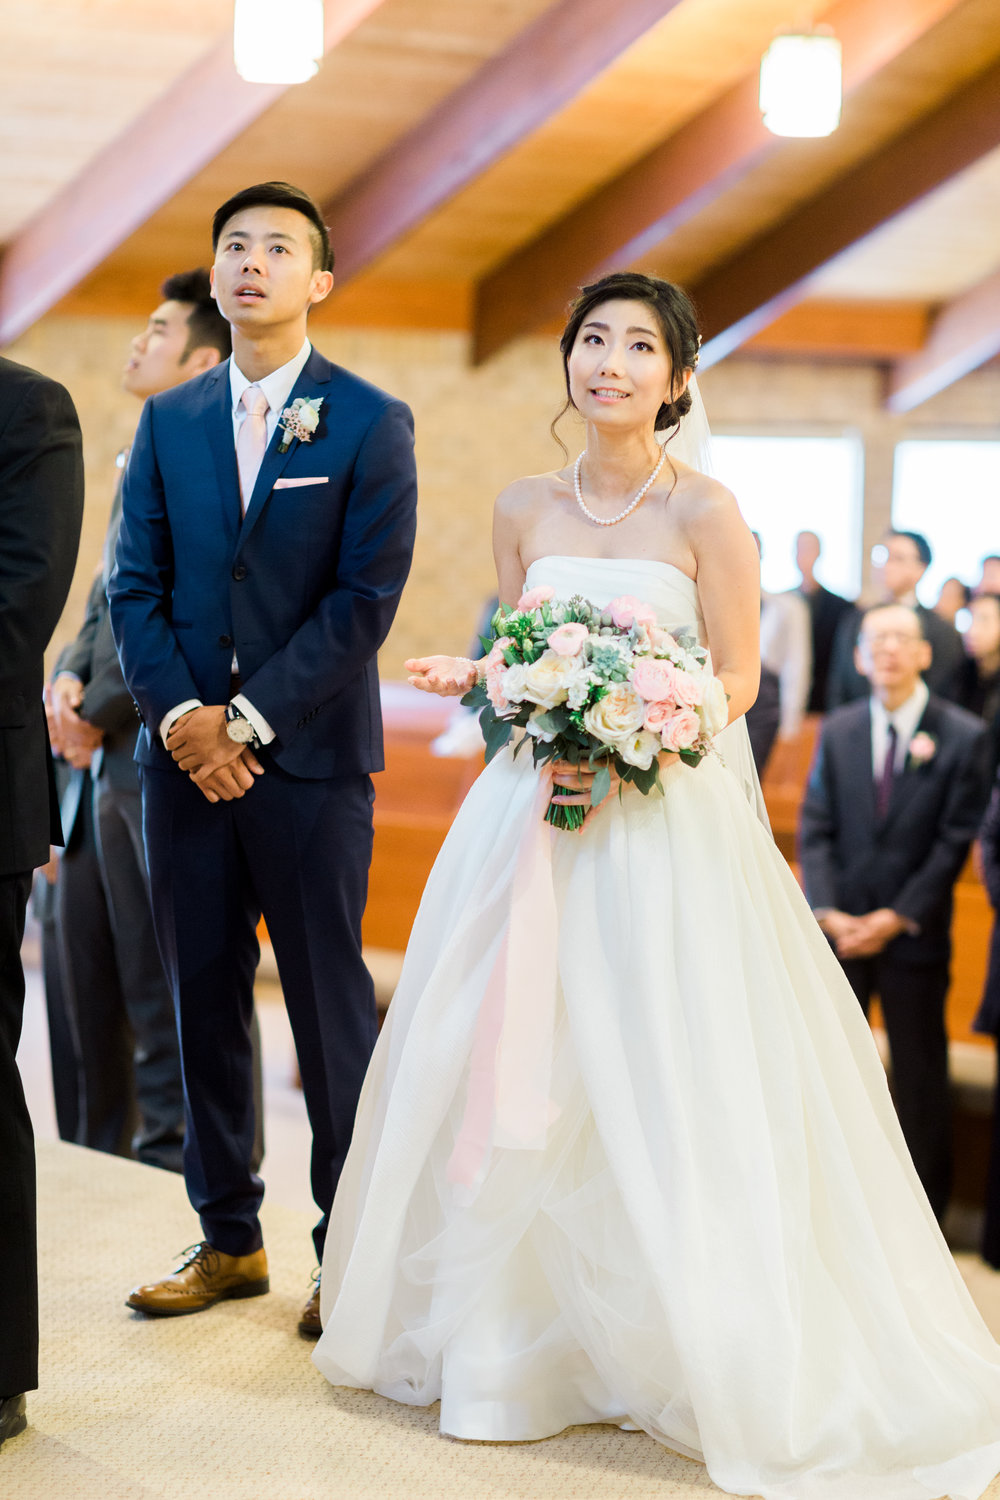 Toronto Fine Art Photographer - Cornerstone Chinese Alliance Church Wedding - Ceremony-54.jpg